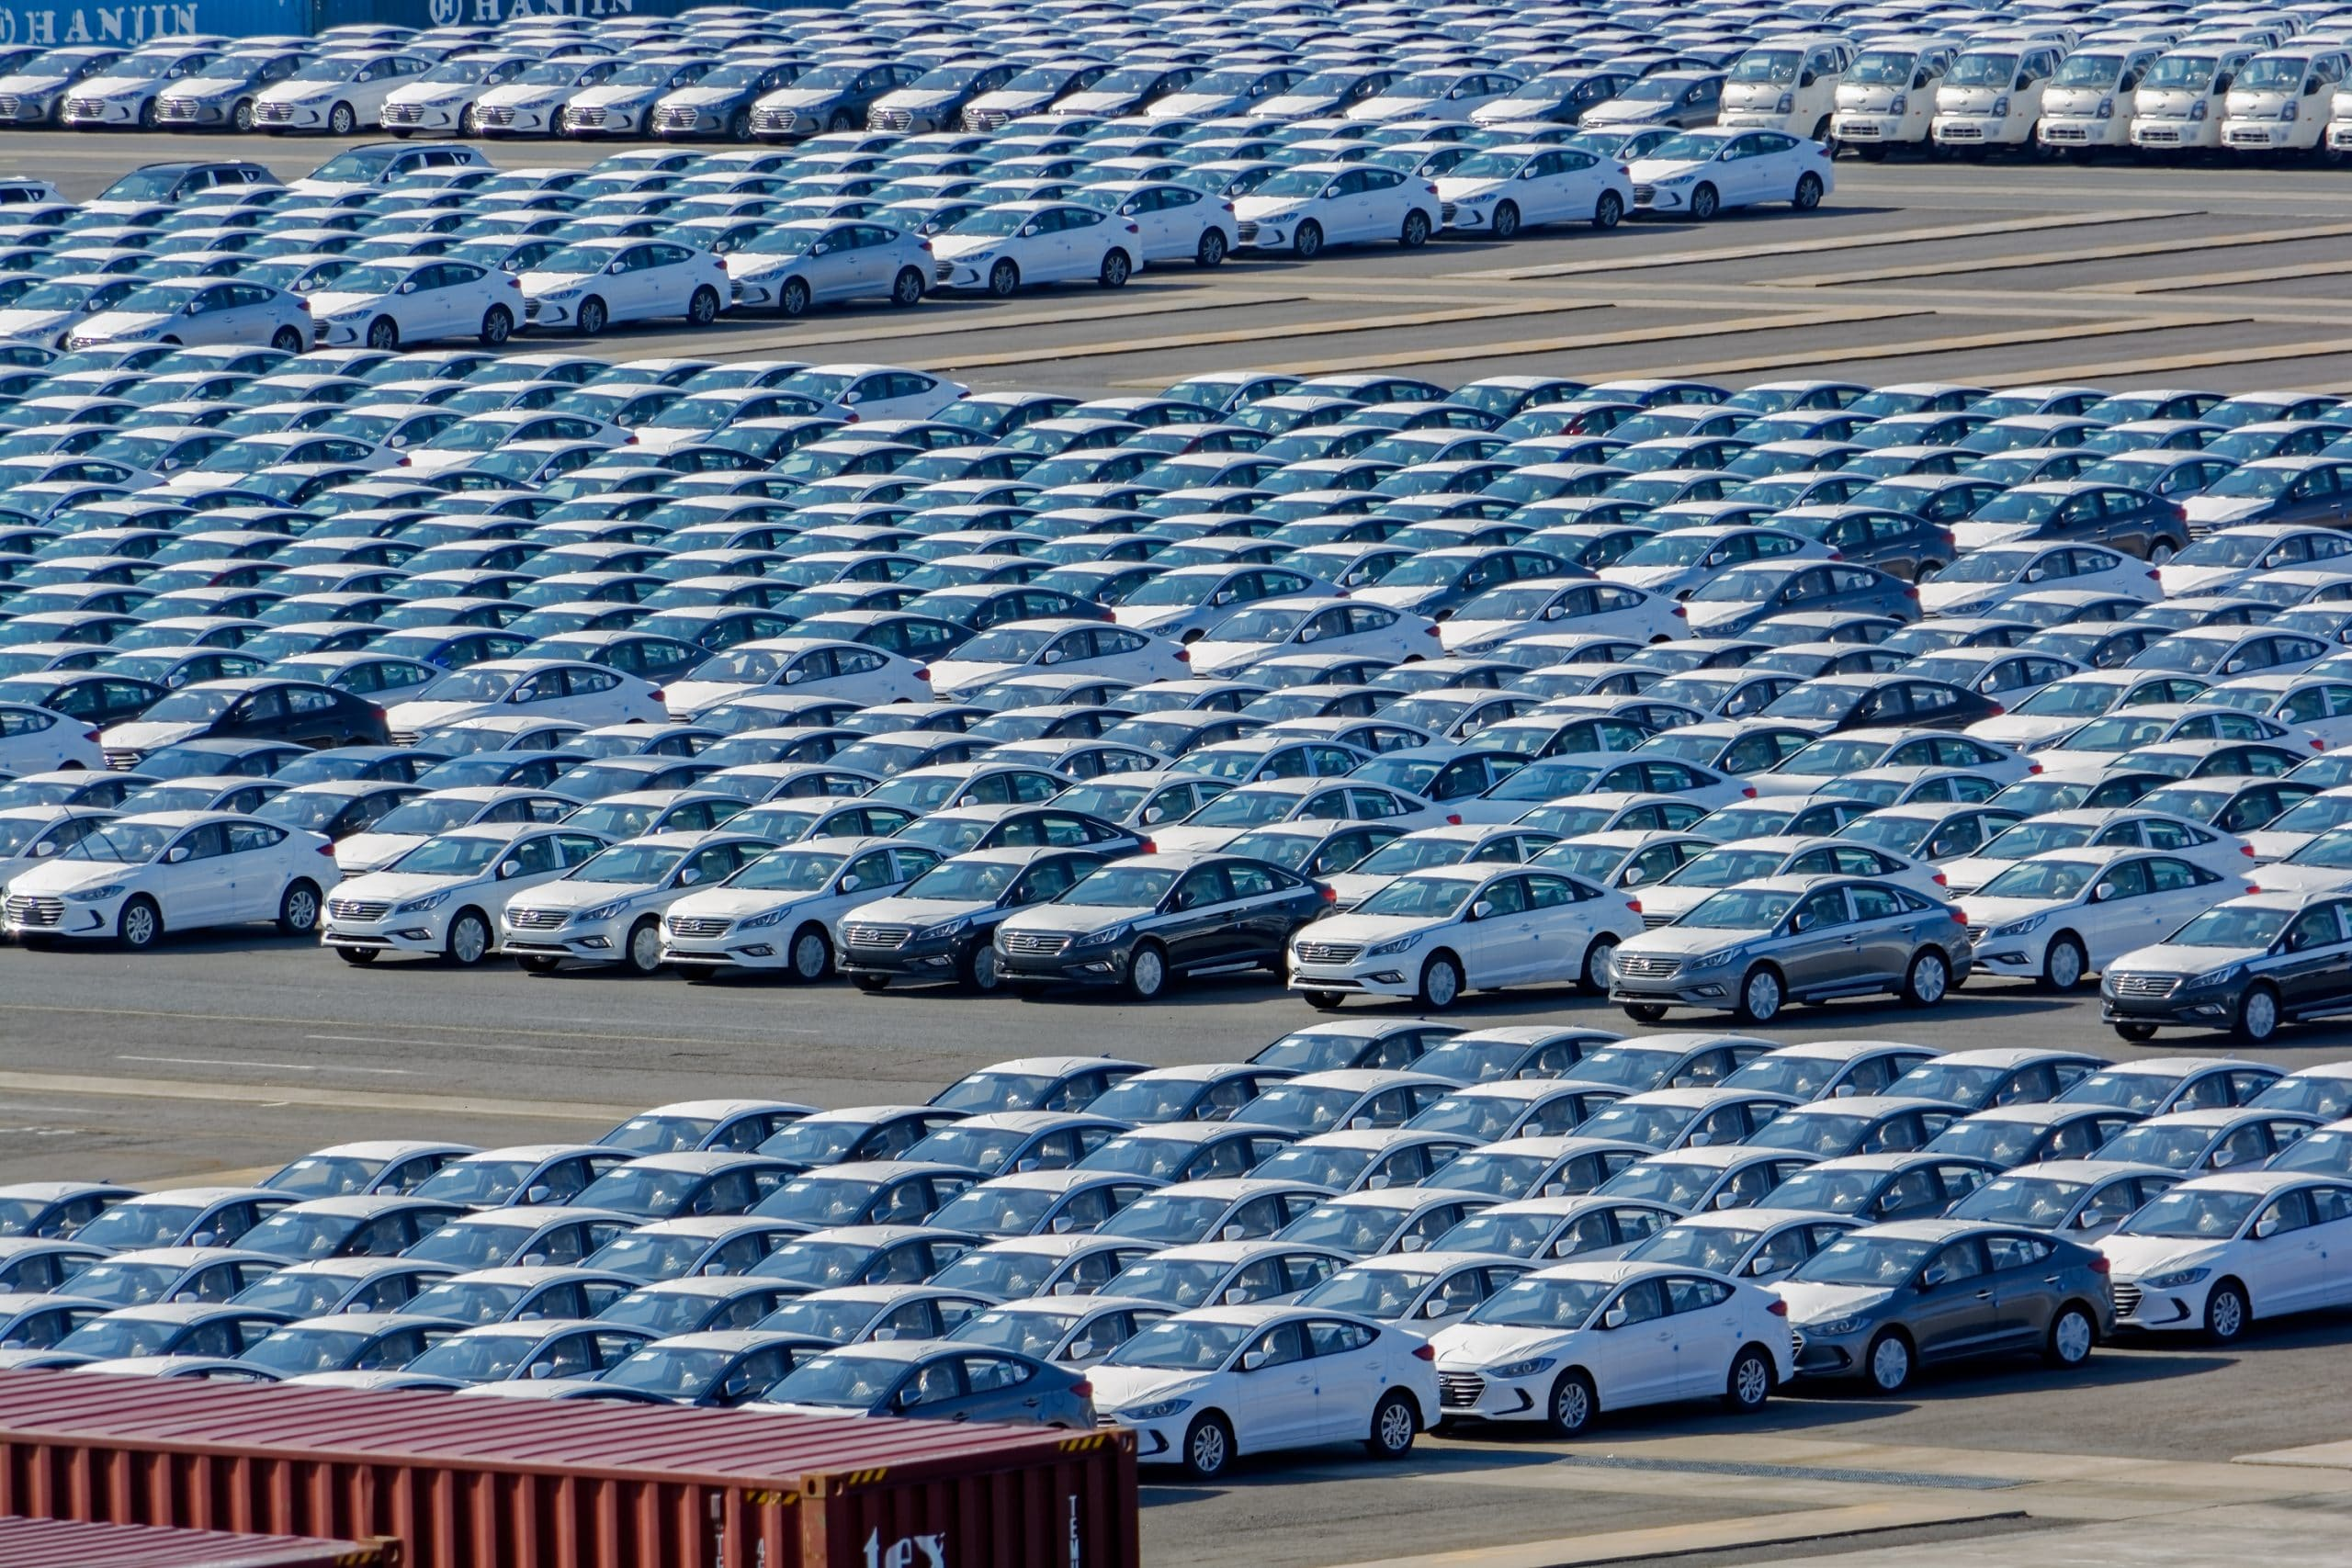 Gwangyang: Rows of new cars waiting to be dispatch and shipped around the world from the cargo port in South Korea.